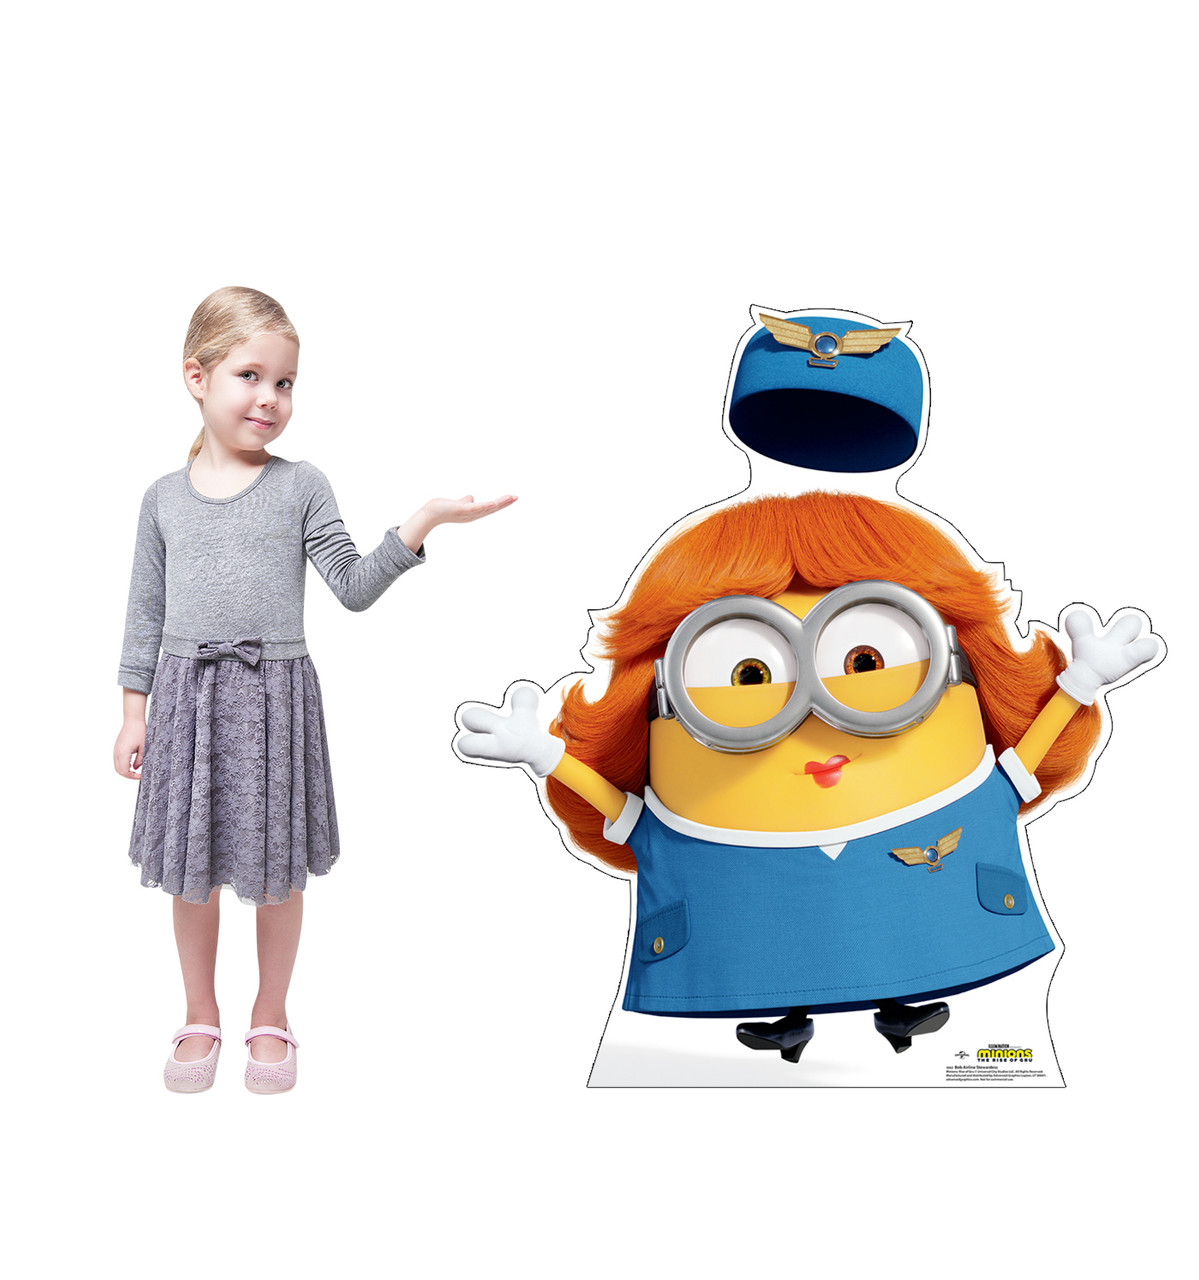 Life-size cardboard standee of Bob Airline Stewardess from the new movie Minions Rise of Gru with model.